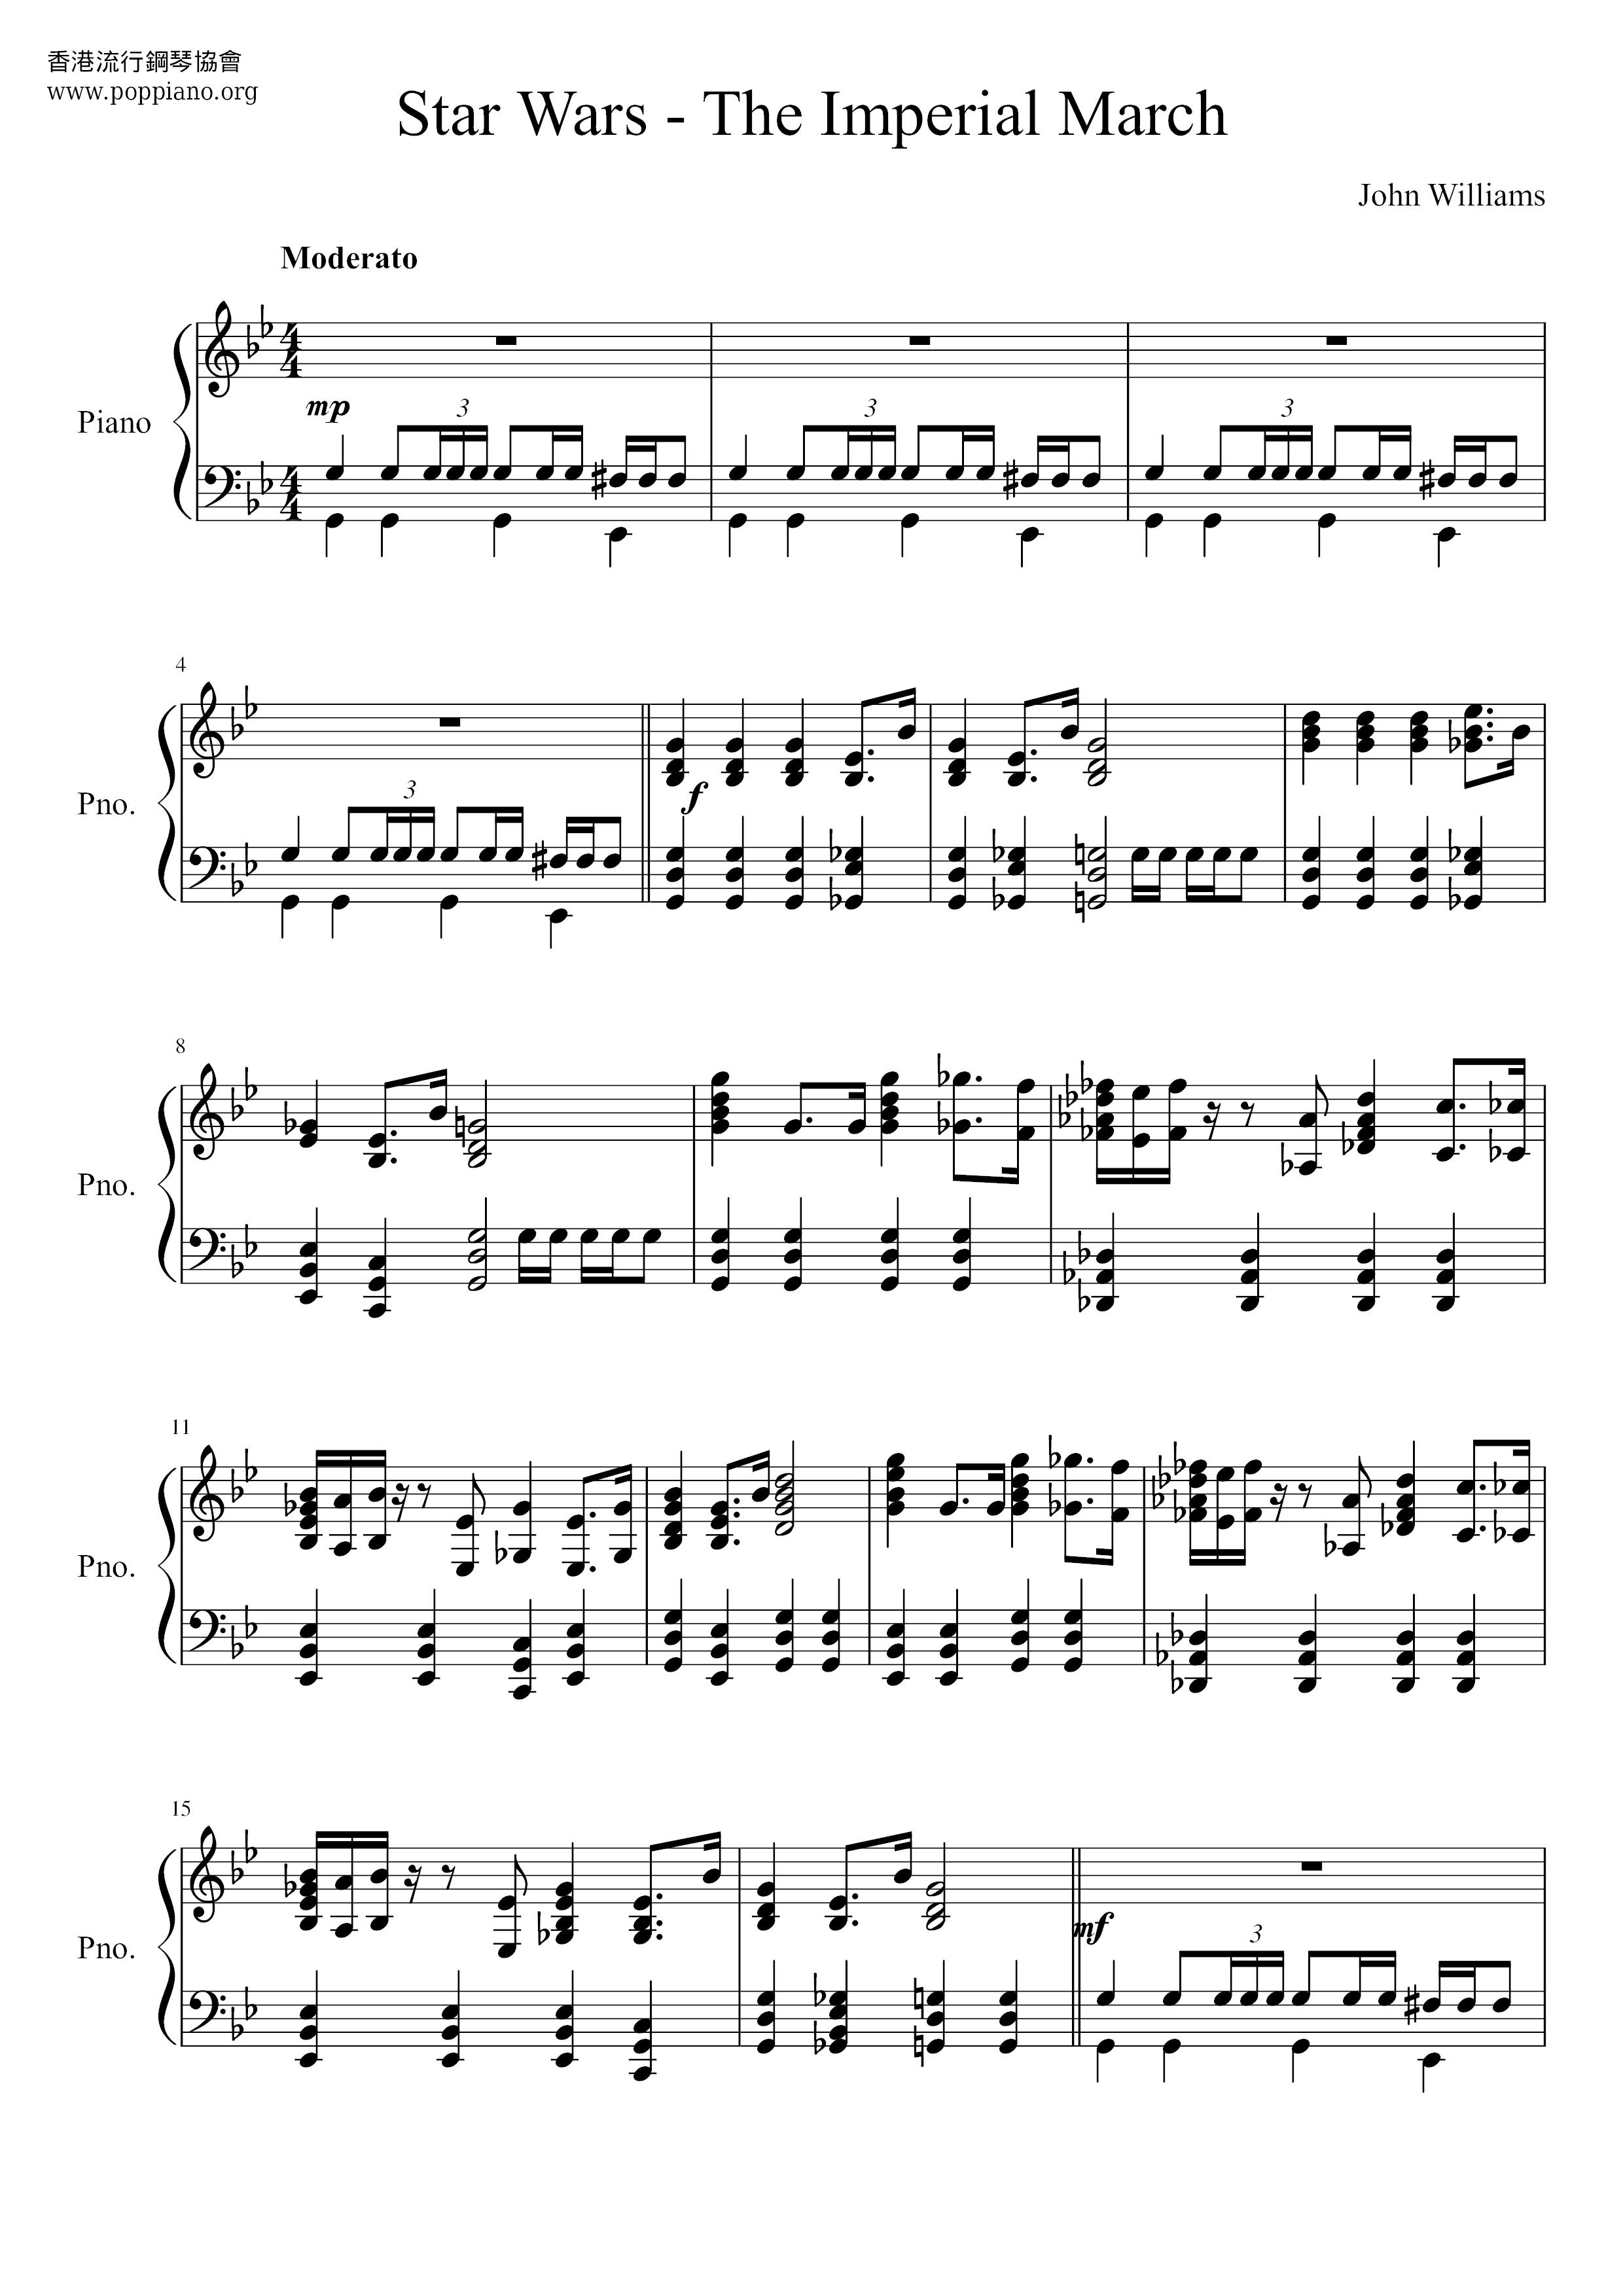 Star Wars The Imperial Marchall Versions Sheet Music Piano Score Free Pdf Download Hk Pop Piano Academy